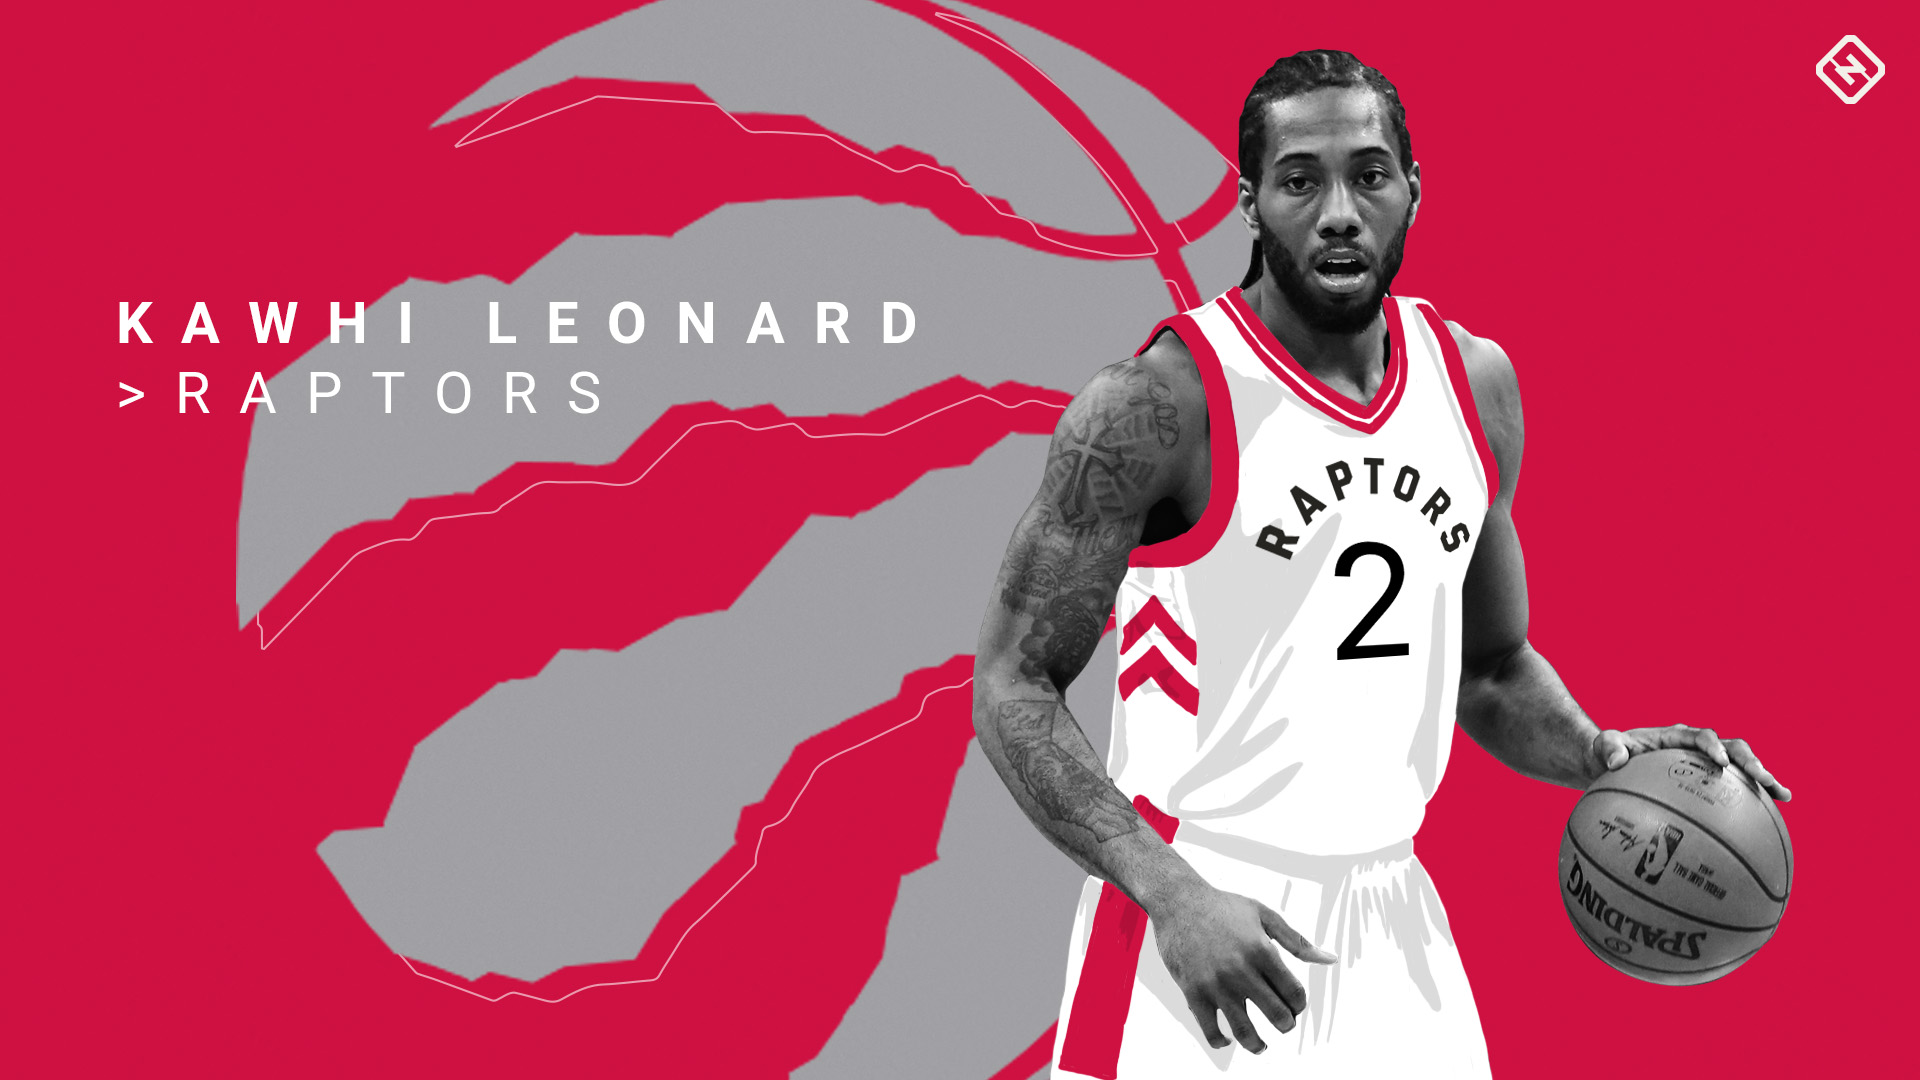 Kawhi Leonard Raptors Can Only Live In Present With Season Of Uncertainty Ahead